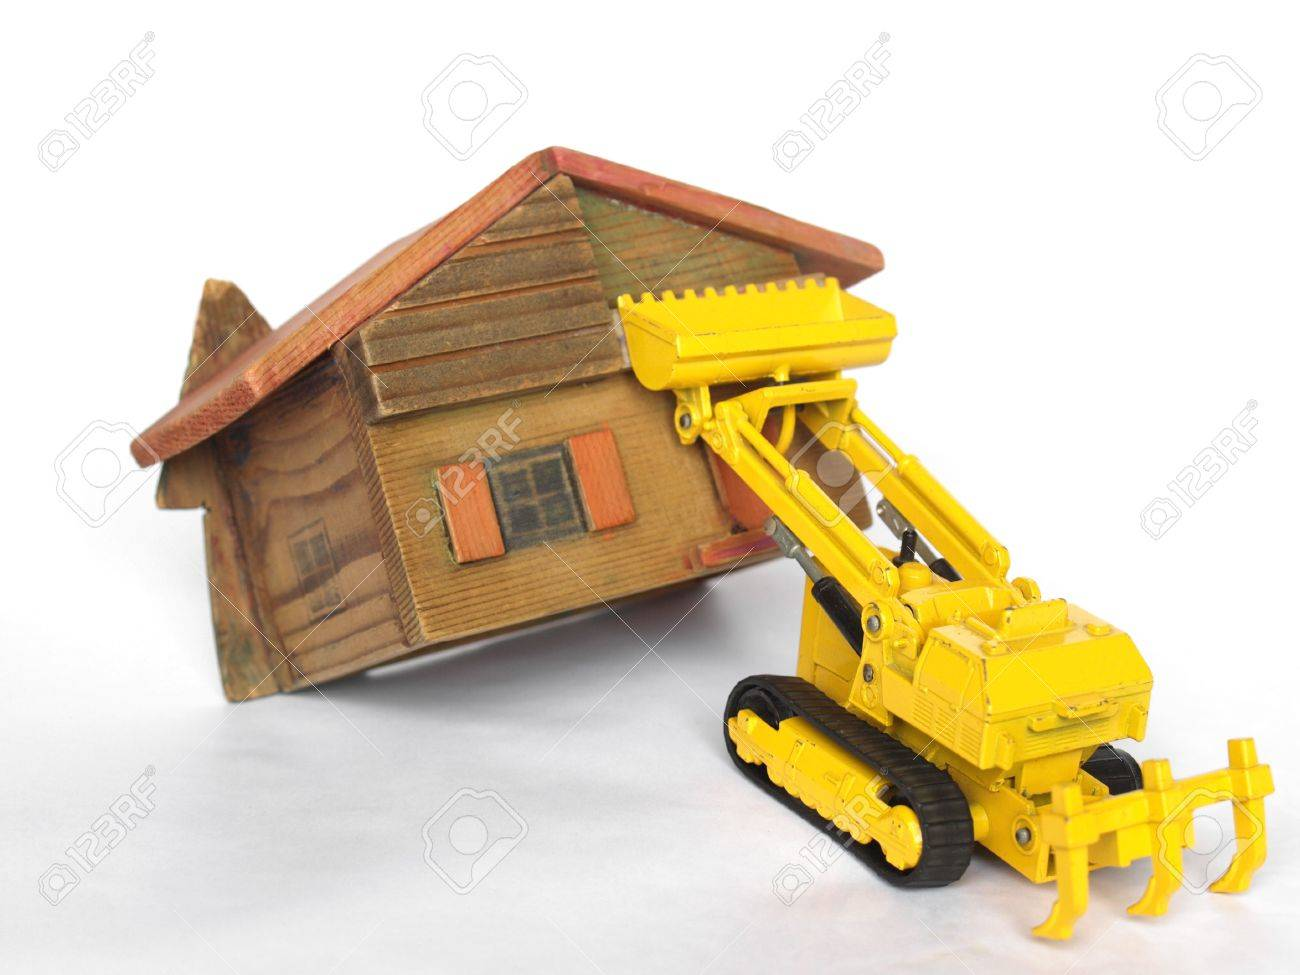 Eviction from house being demolished with bulldozer Stock Photo - 4142481